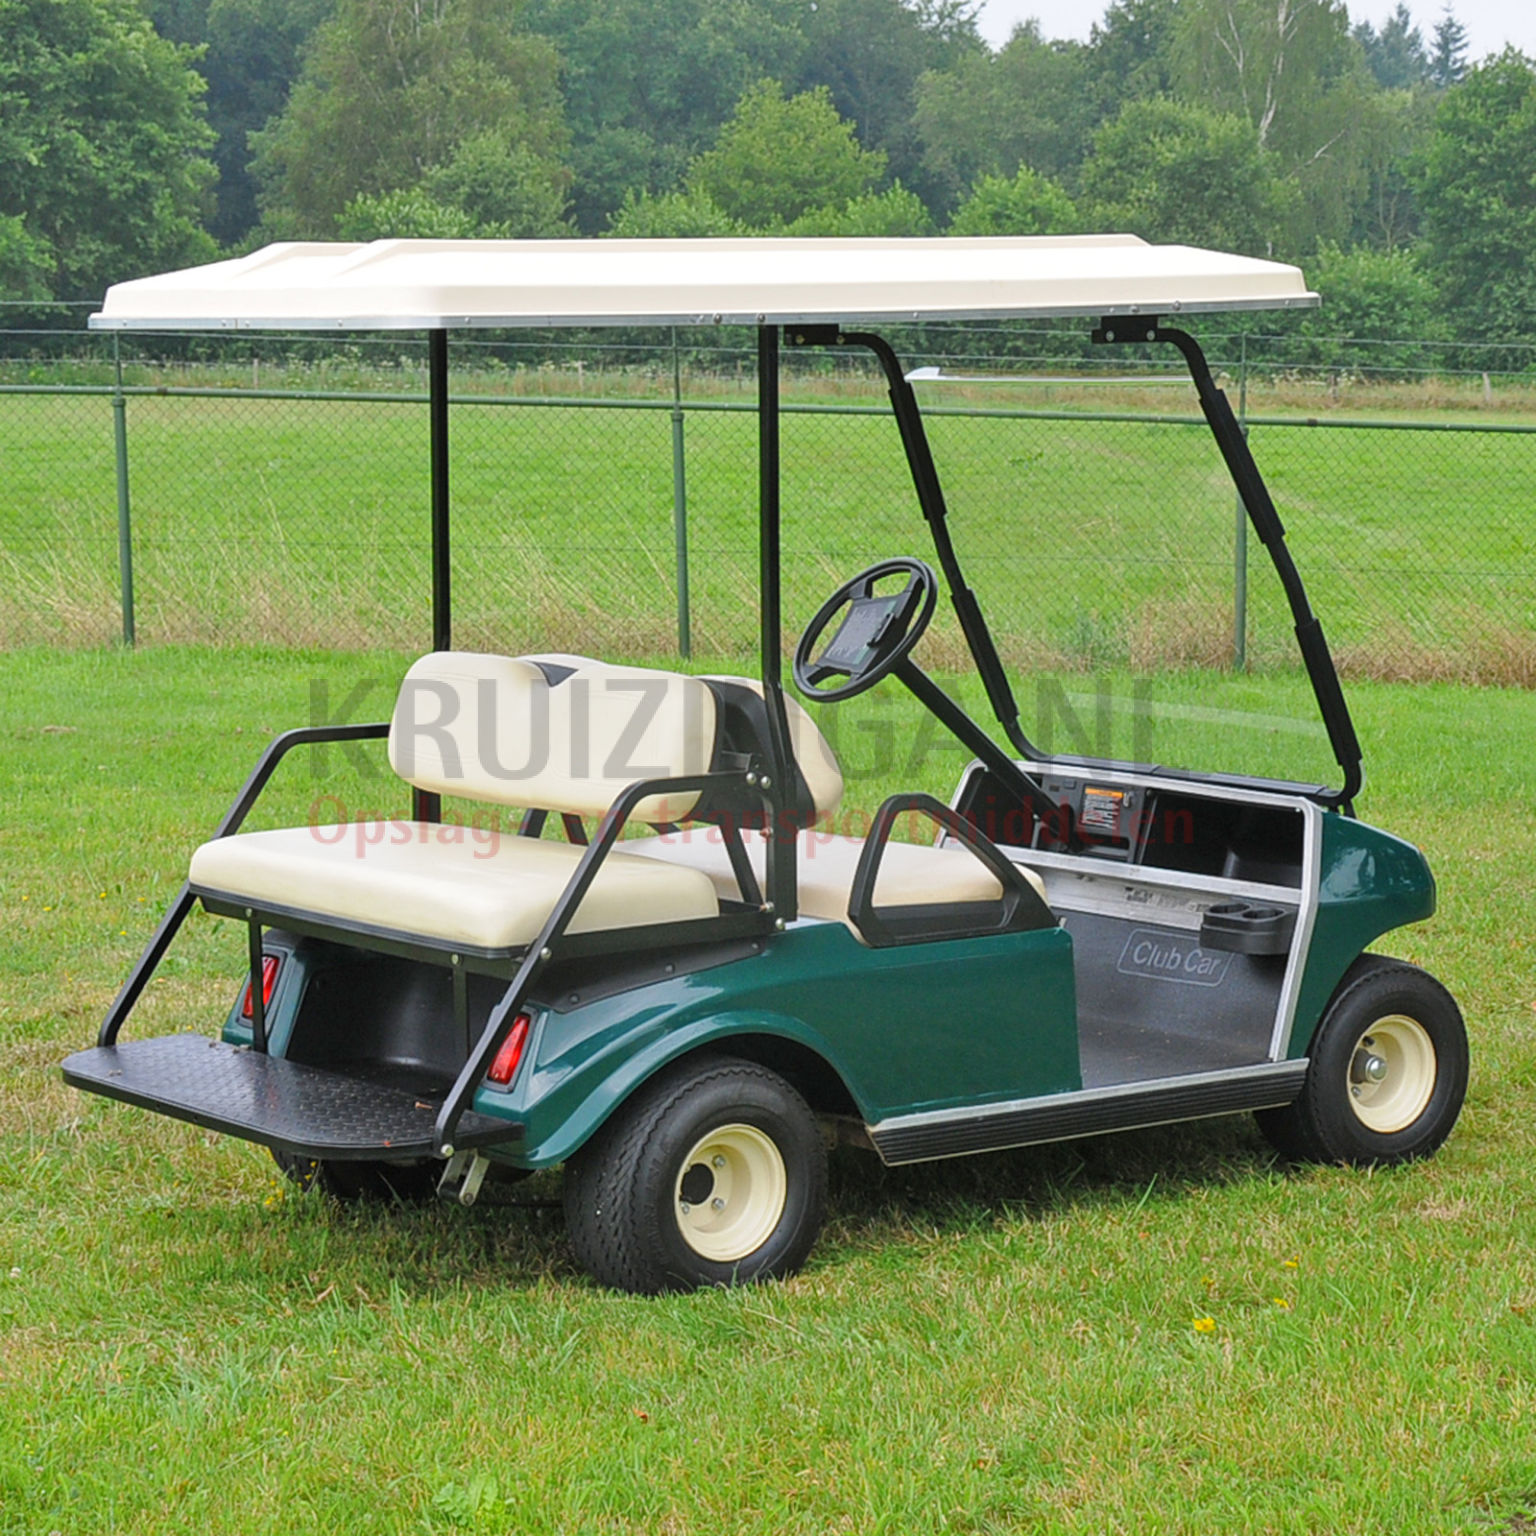 golf cart club car ds pour 4 personnes lectrique occasion. Black Bedroom Furniture Sets. Home Design Ideas